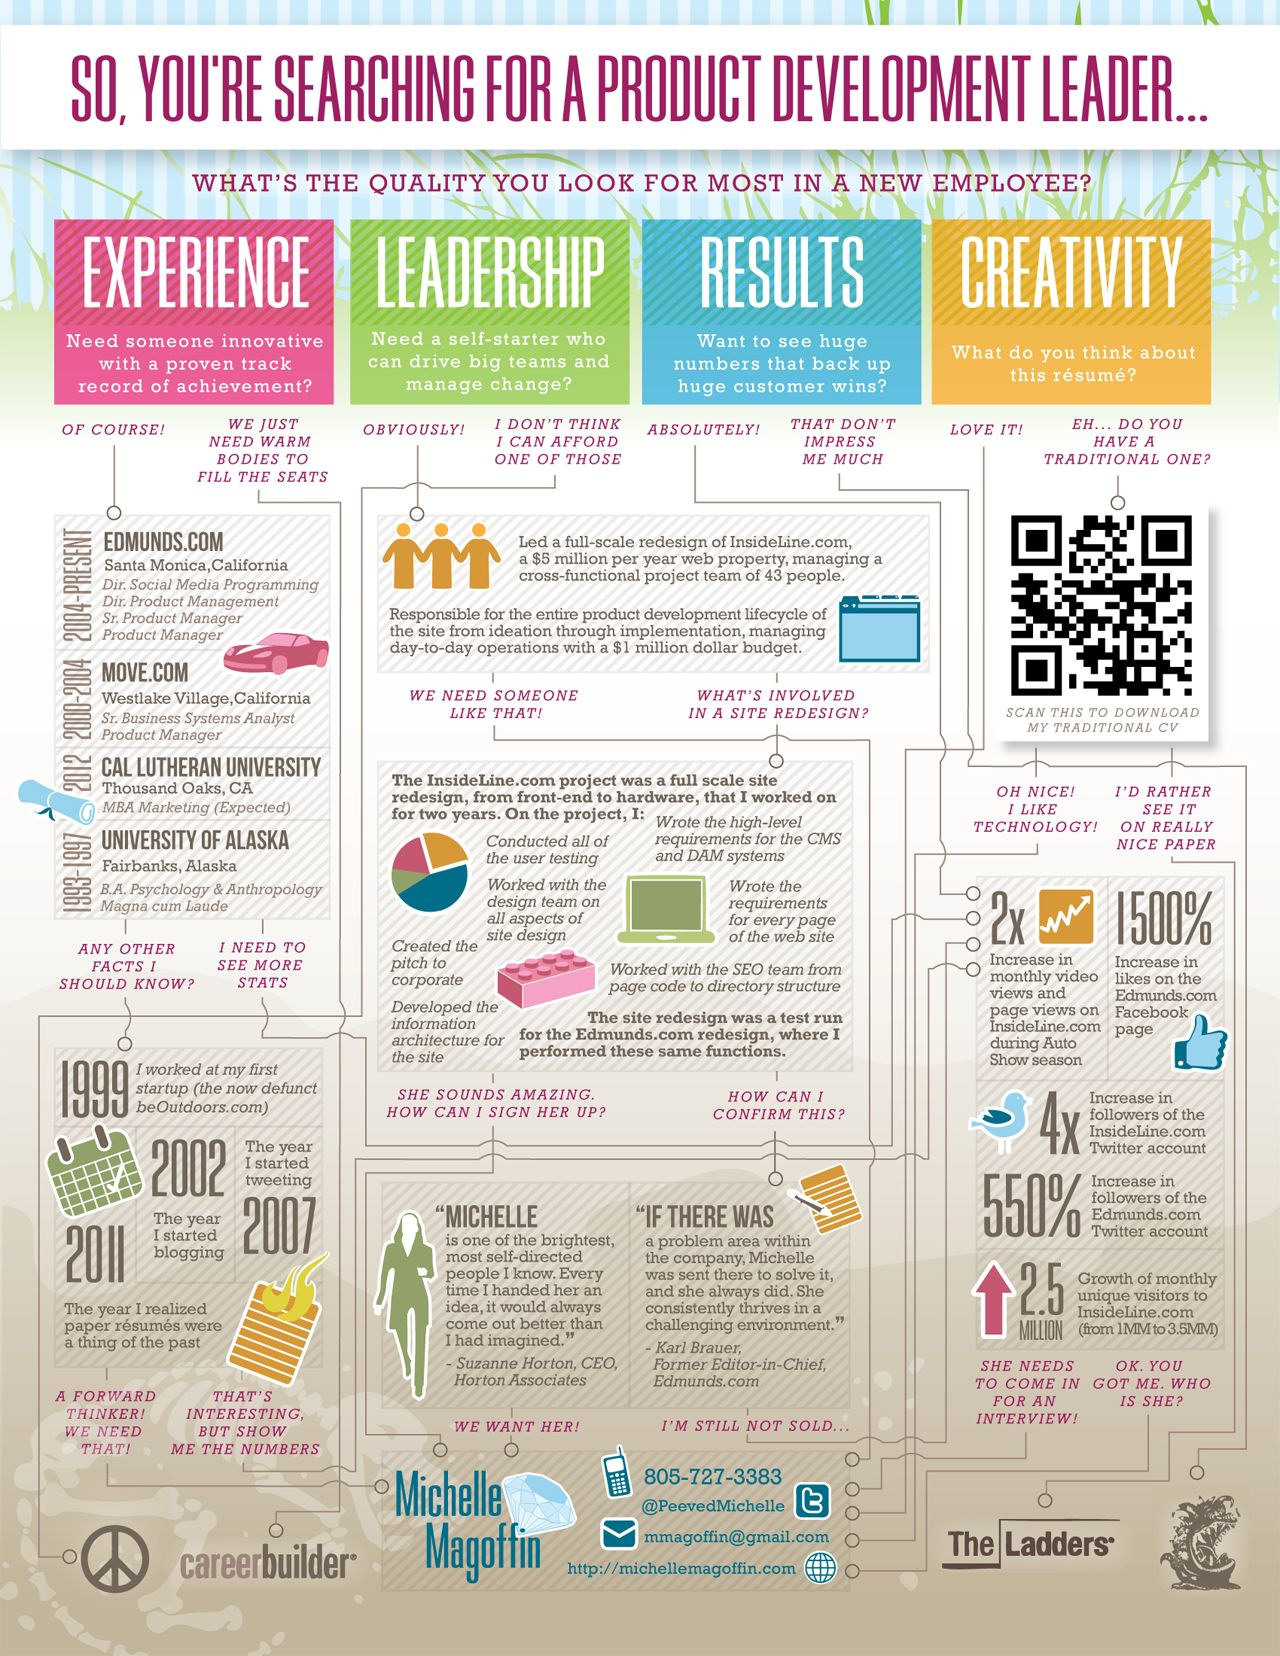 1000 images about cool resumes on pinterest resume creative resume